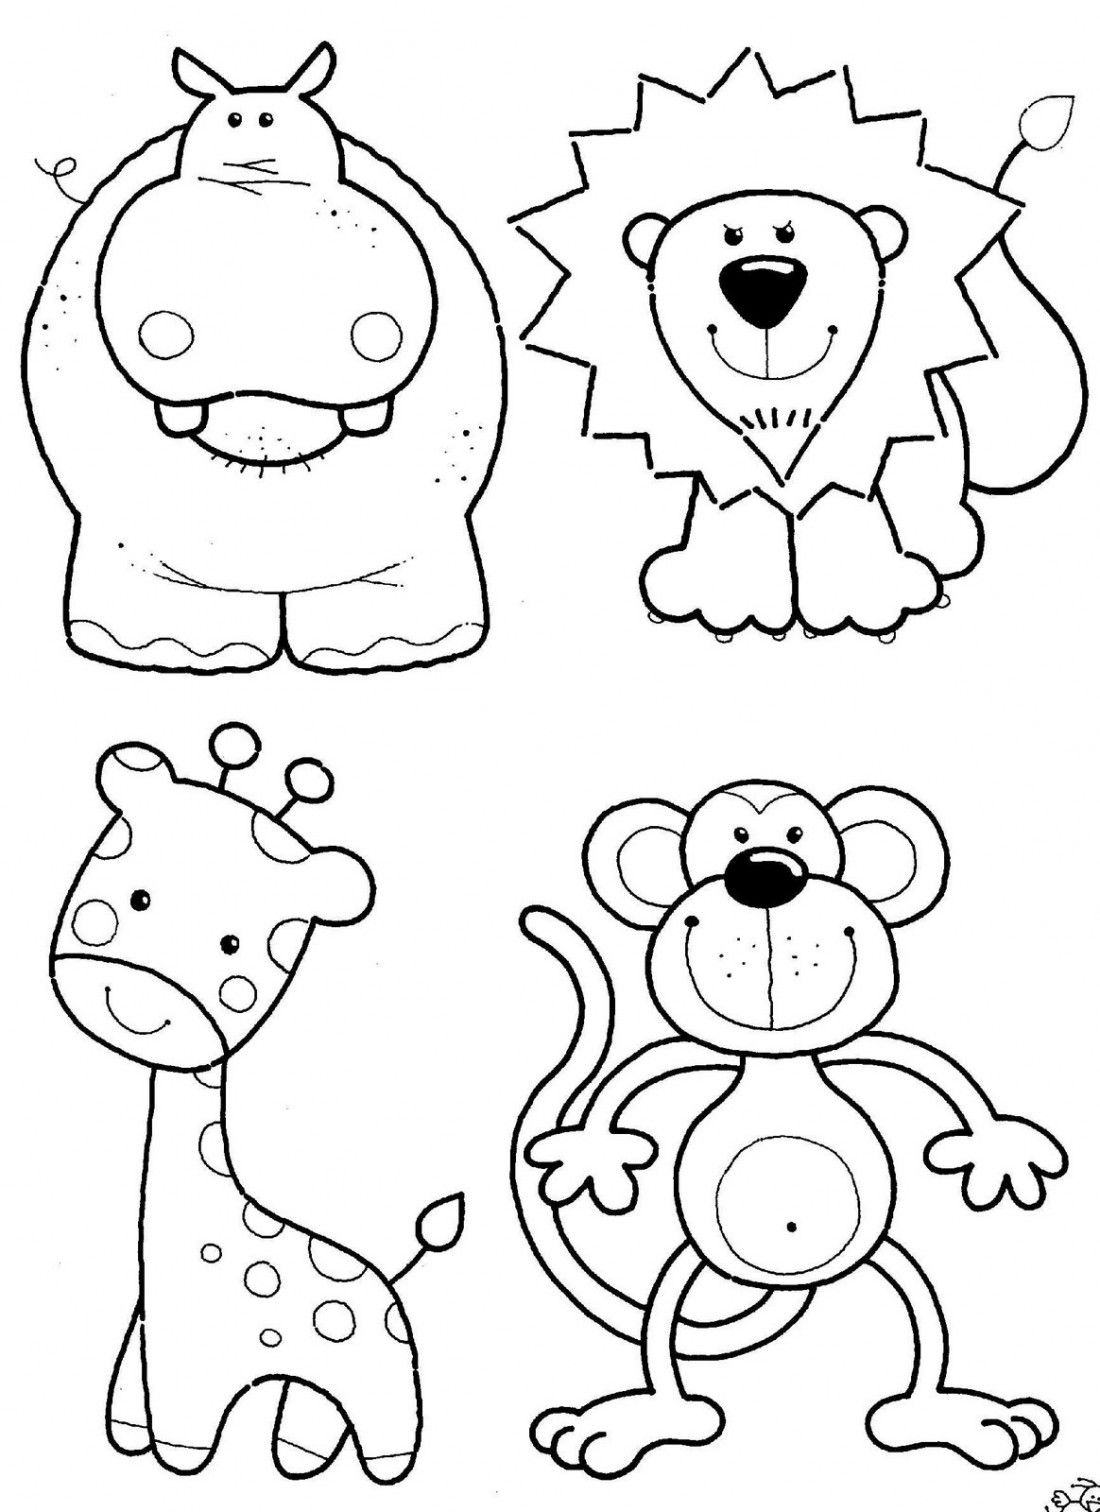 free animal coloring pages kids id color or paint these and use them - Coloring Sheet For Kids